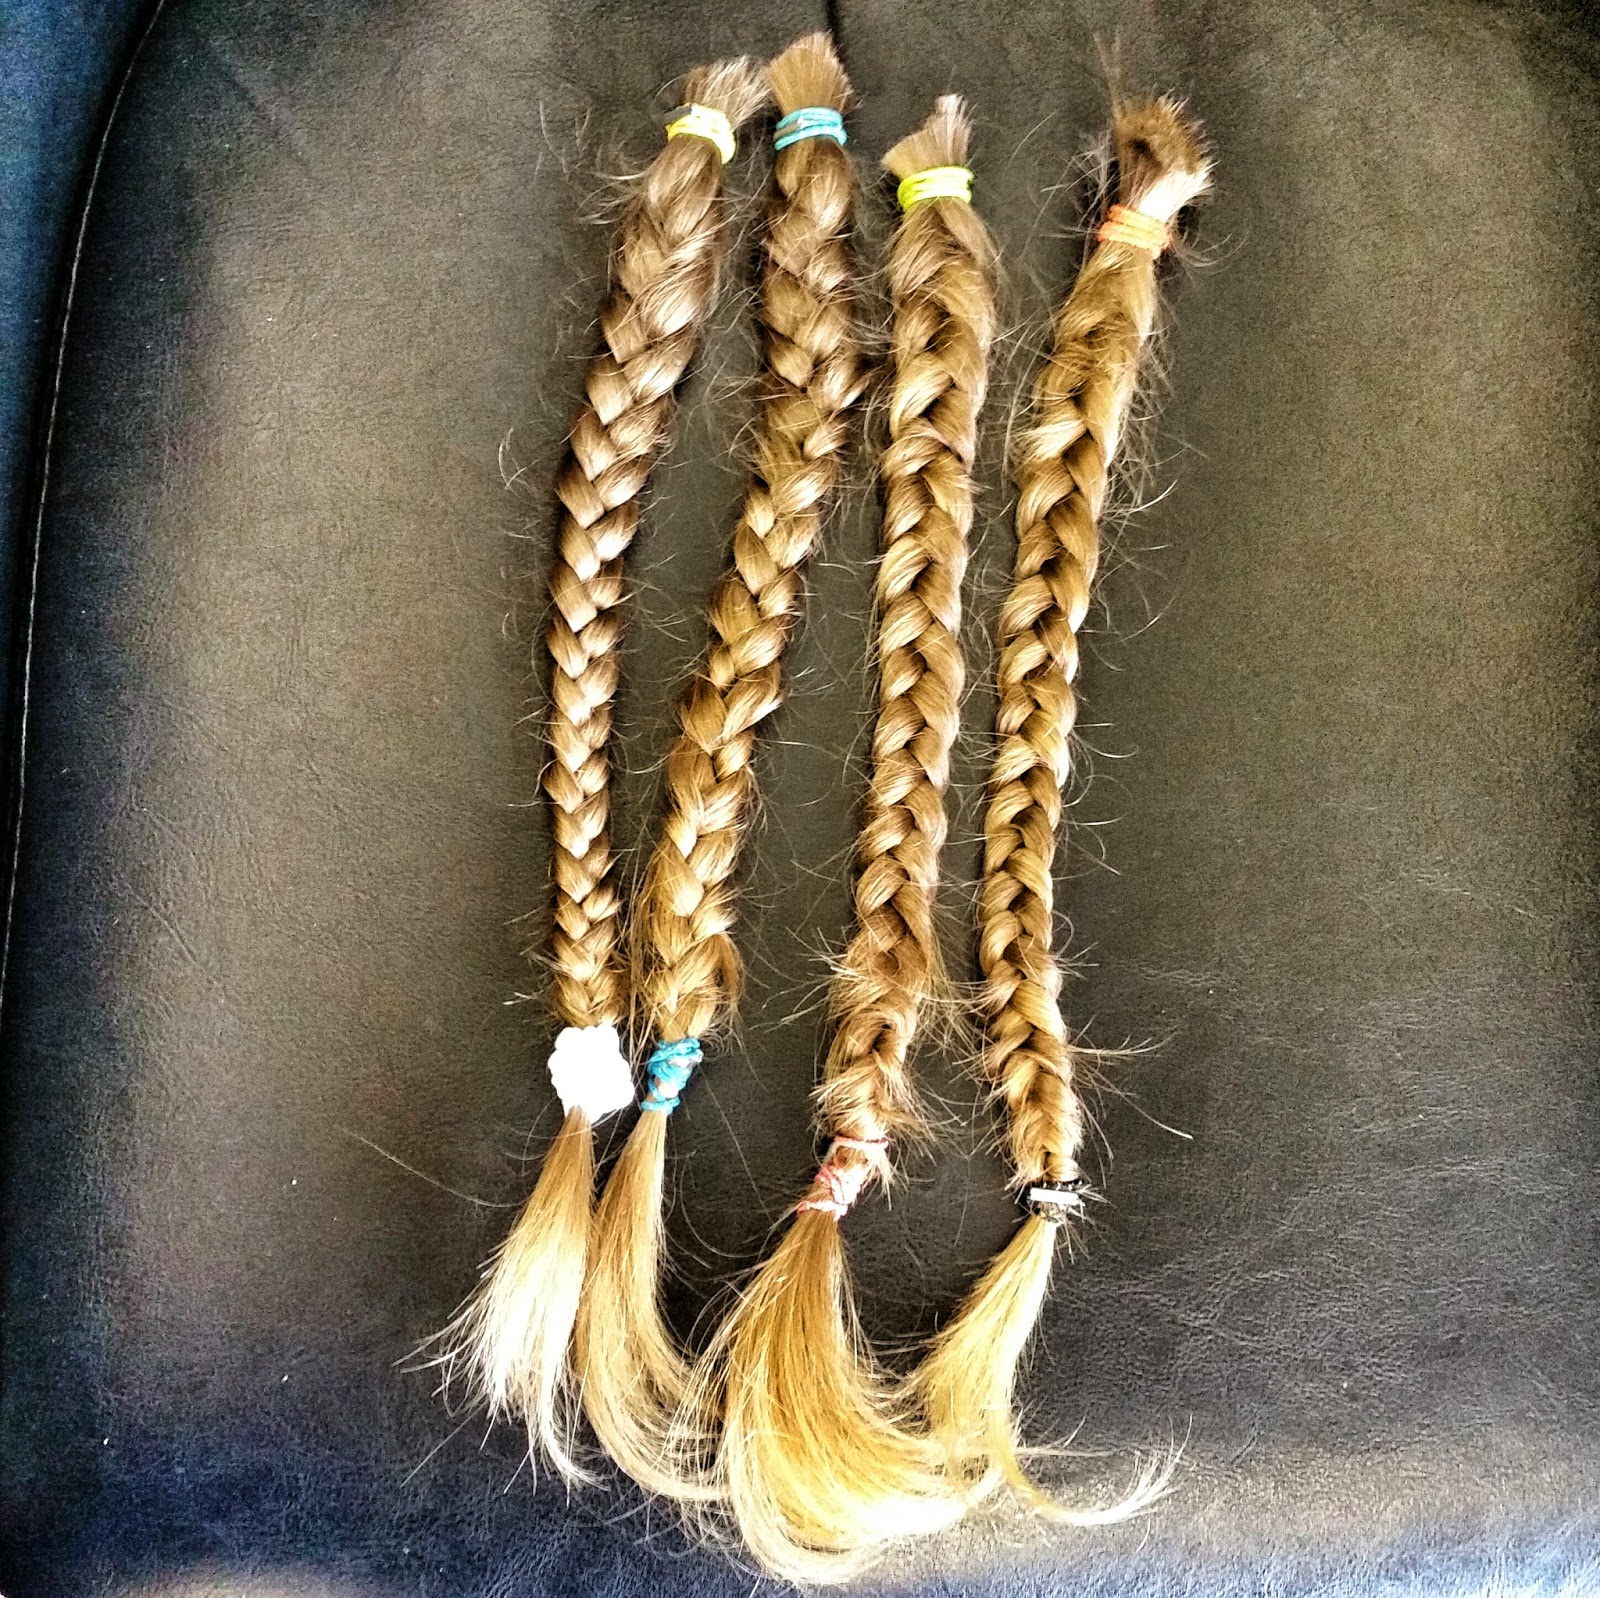 Hair Donation for a wig